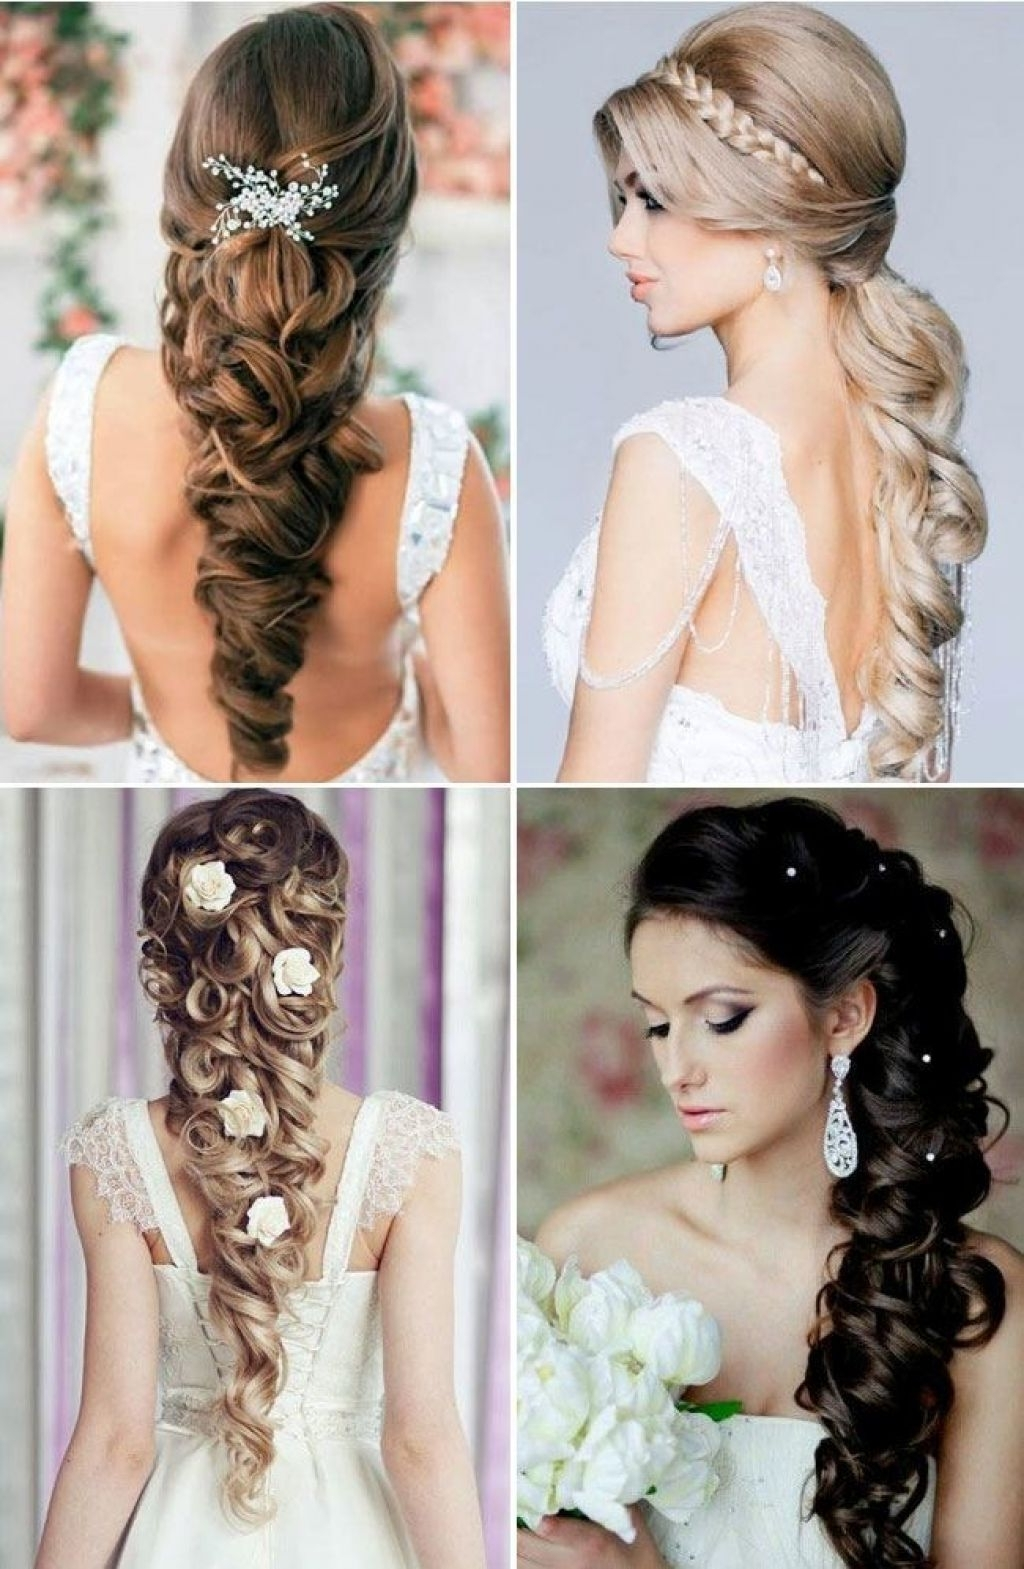 Updo Hairstyles Long Curly Hair Prom Updos Simple Hairstyle Ideas Intended For Recent Wedding Hairstyles For Long Hair With Braids (View 11 of 15)